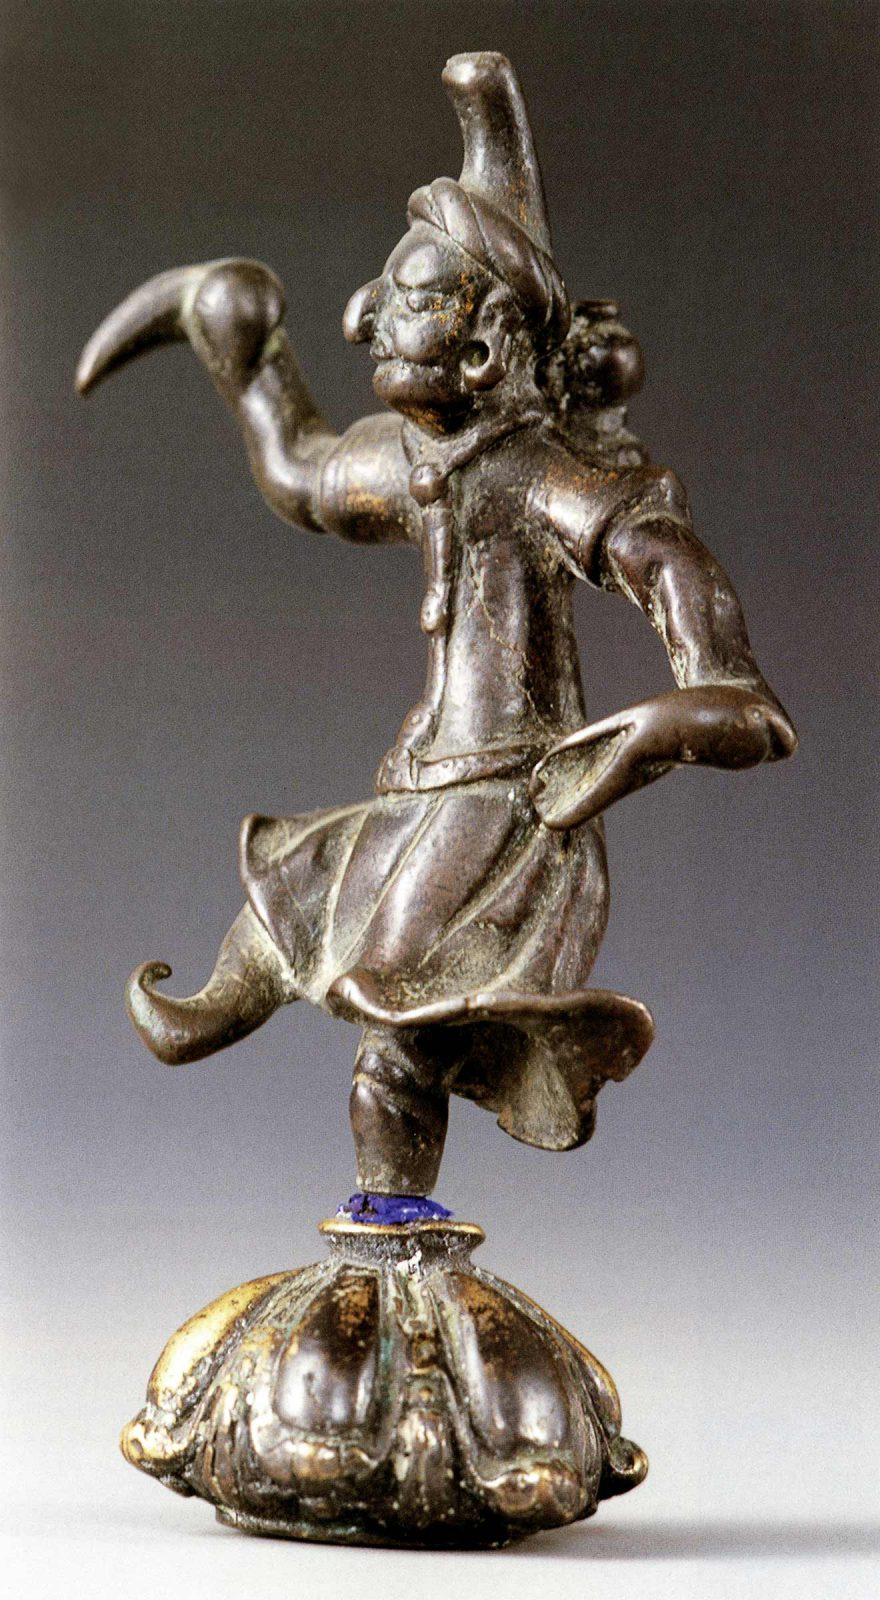 Dancing sculpture of dancer with conical hat and long sleeves